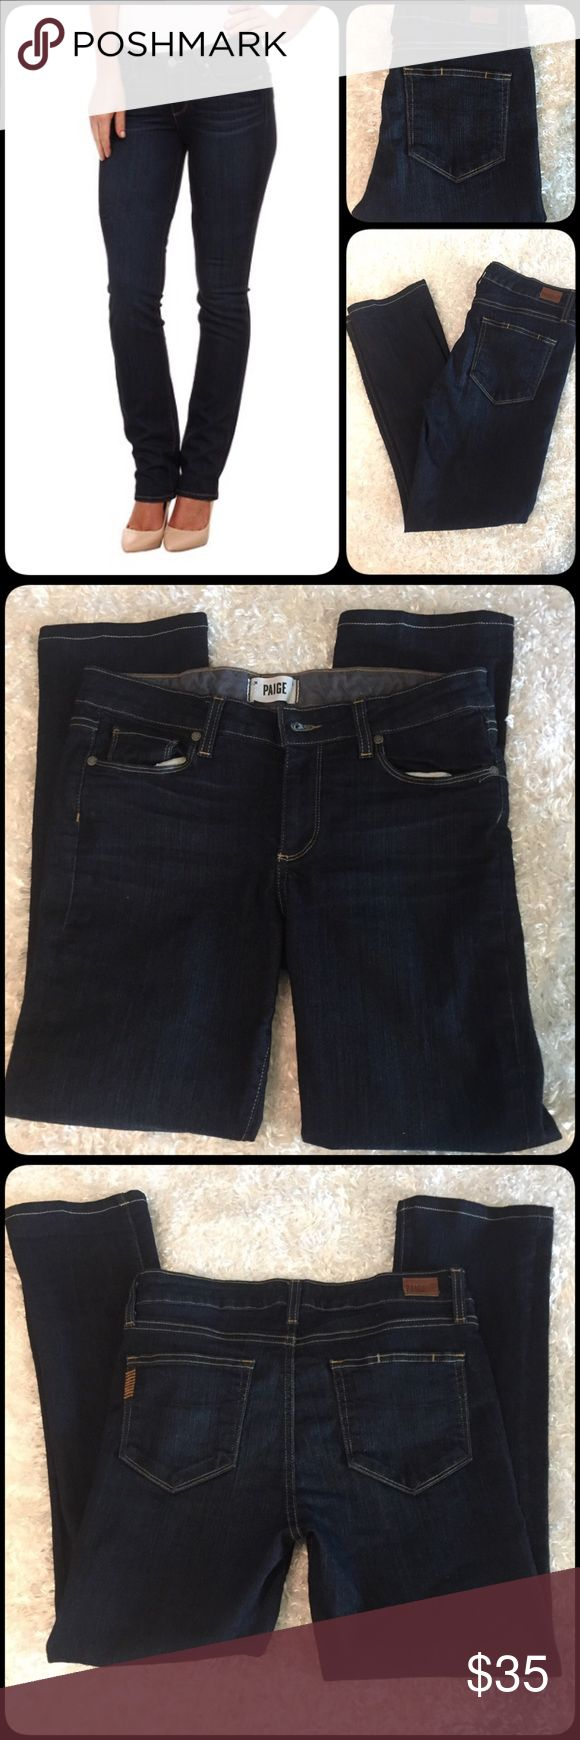 Paige Skyline Straight jeans 🌇⚡️1 day only sale⚡️ Paige Skyline Straight jeans in excellent like new condition a true beauty size 30x27 Paige Jeans Jeans